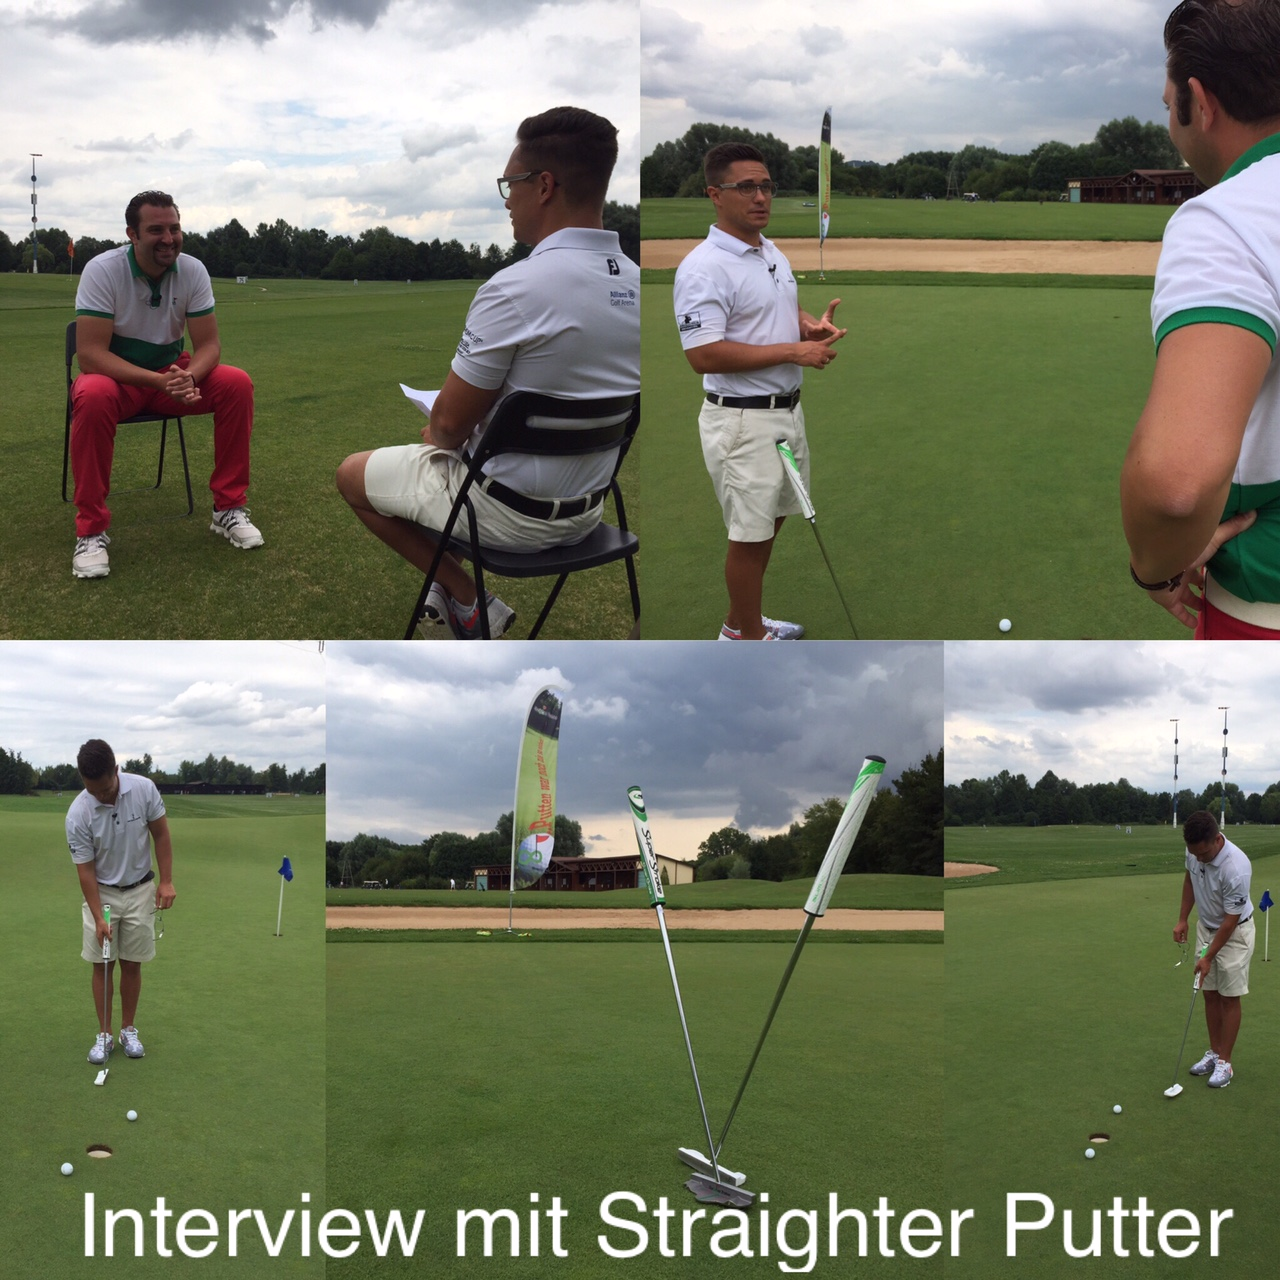 Interview mit Straighter Putter